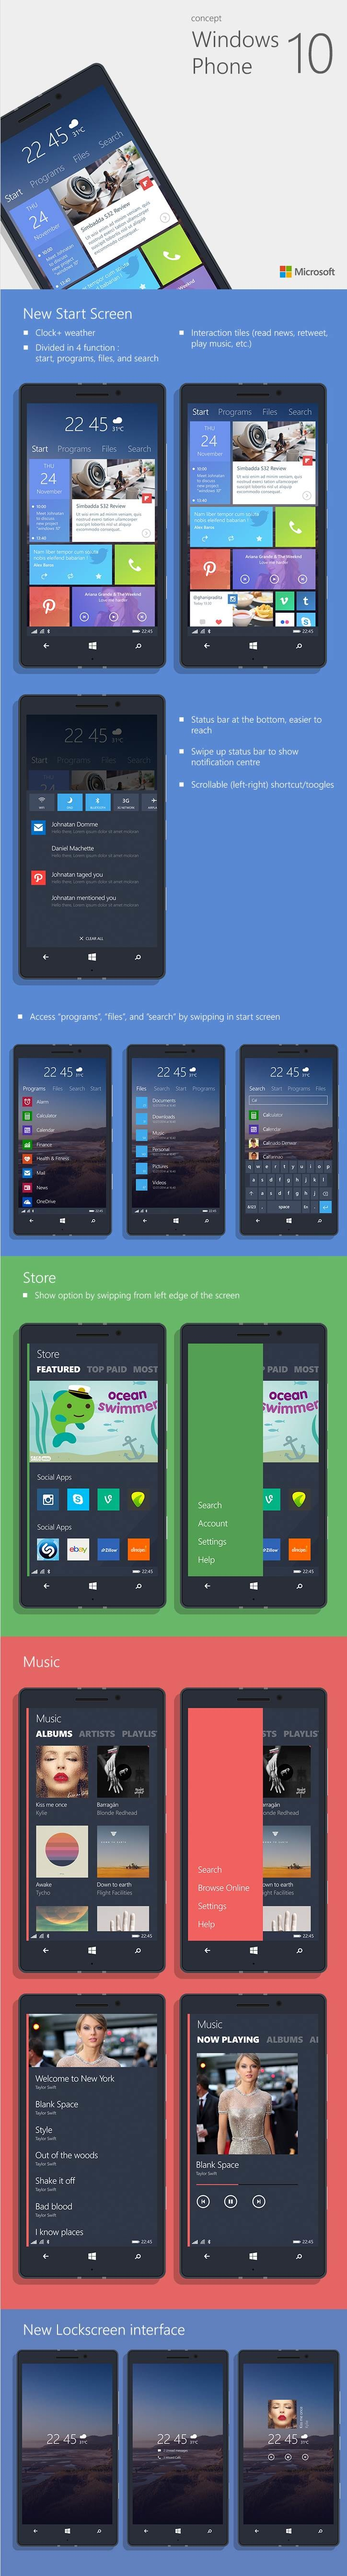 windows_phone_10_concept_on_behance